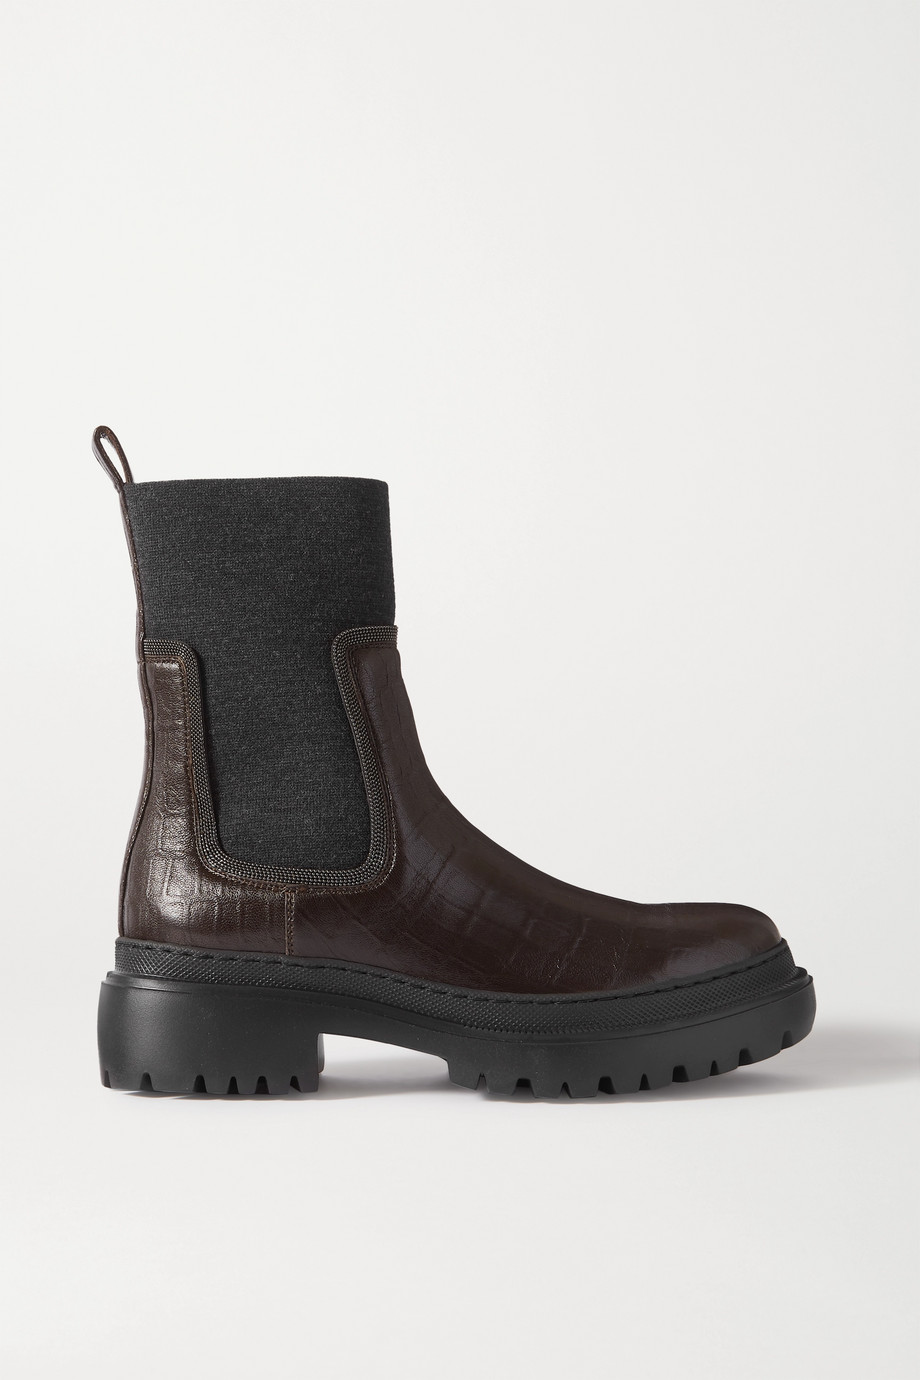 Brunello Cucinelli Bead-embellished cashmere-trimmed croc-effect leather Chelsea boots